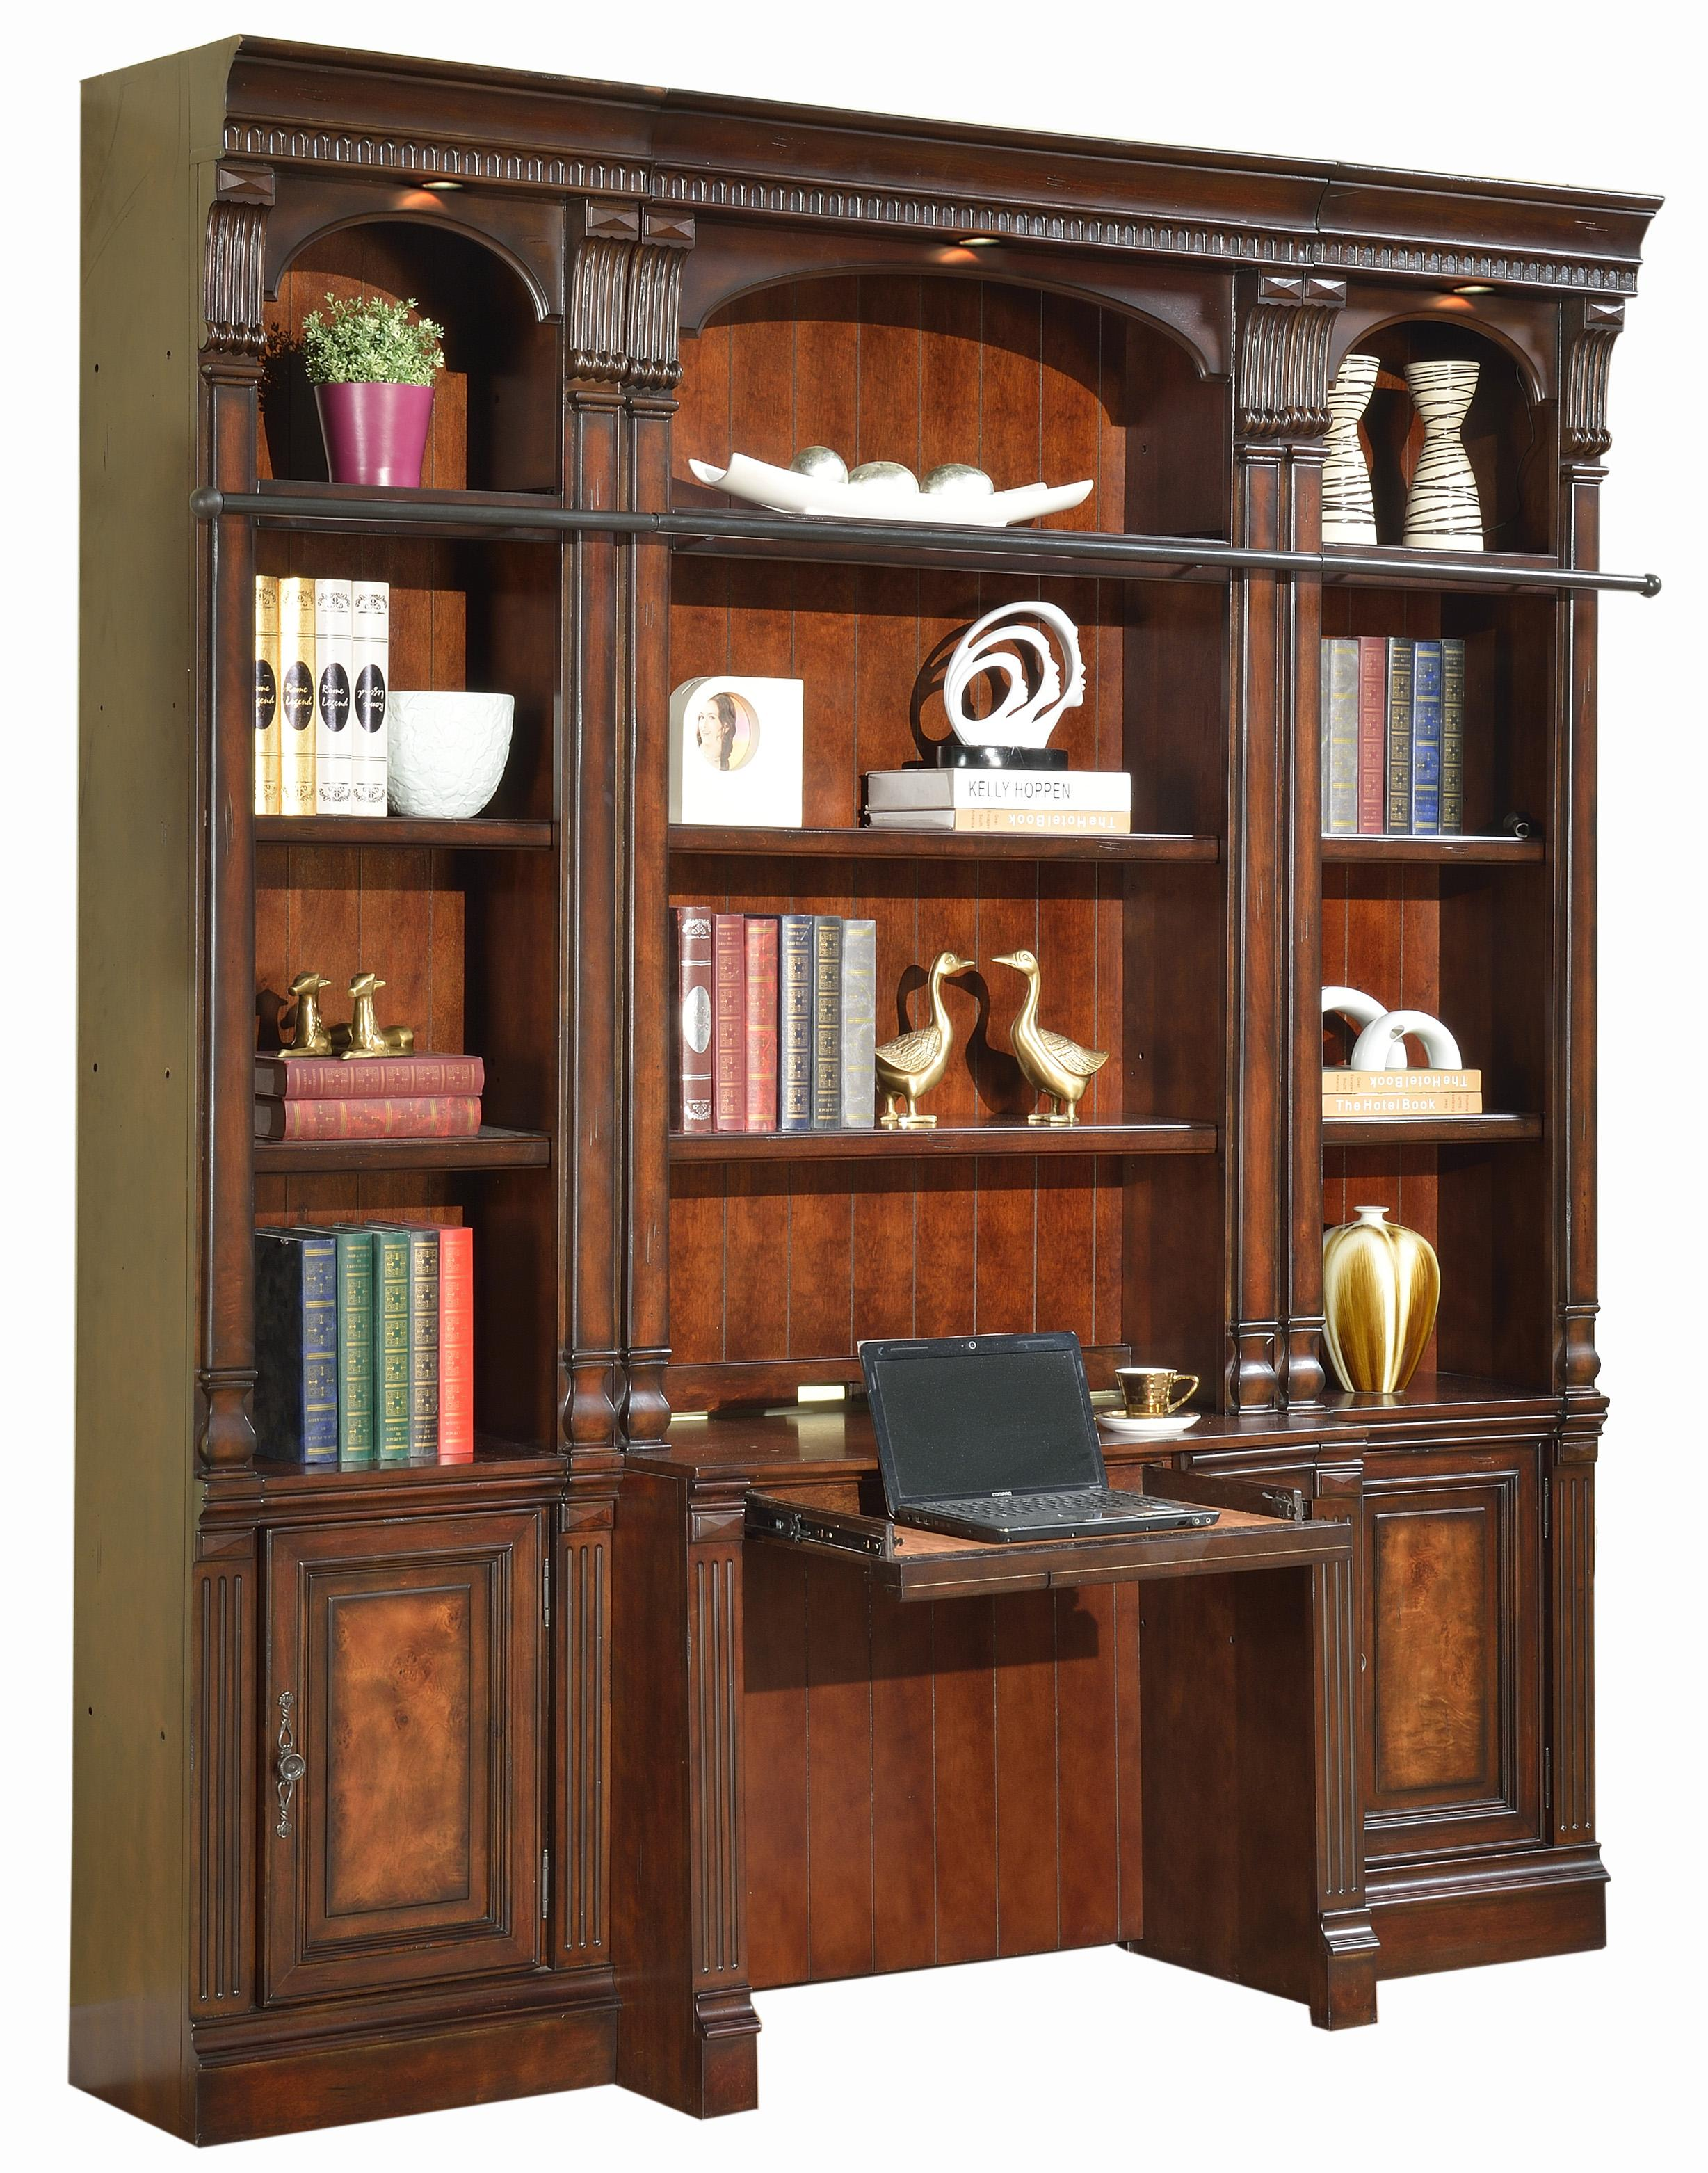 Four-Piece Library Wall with Desk